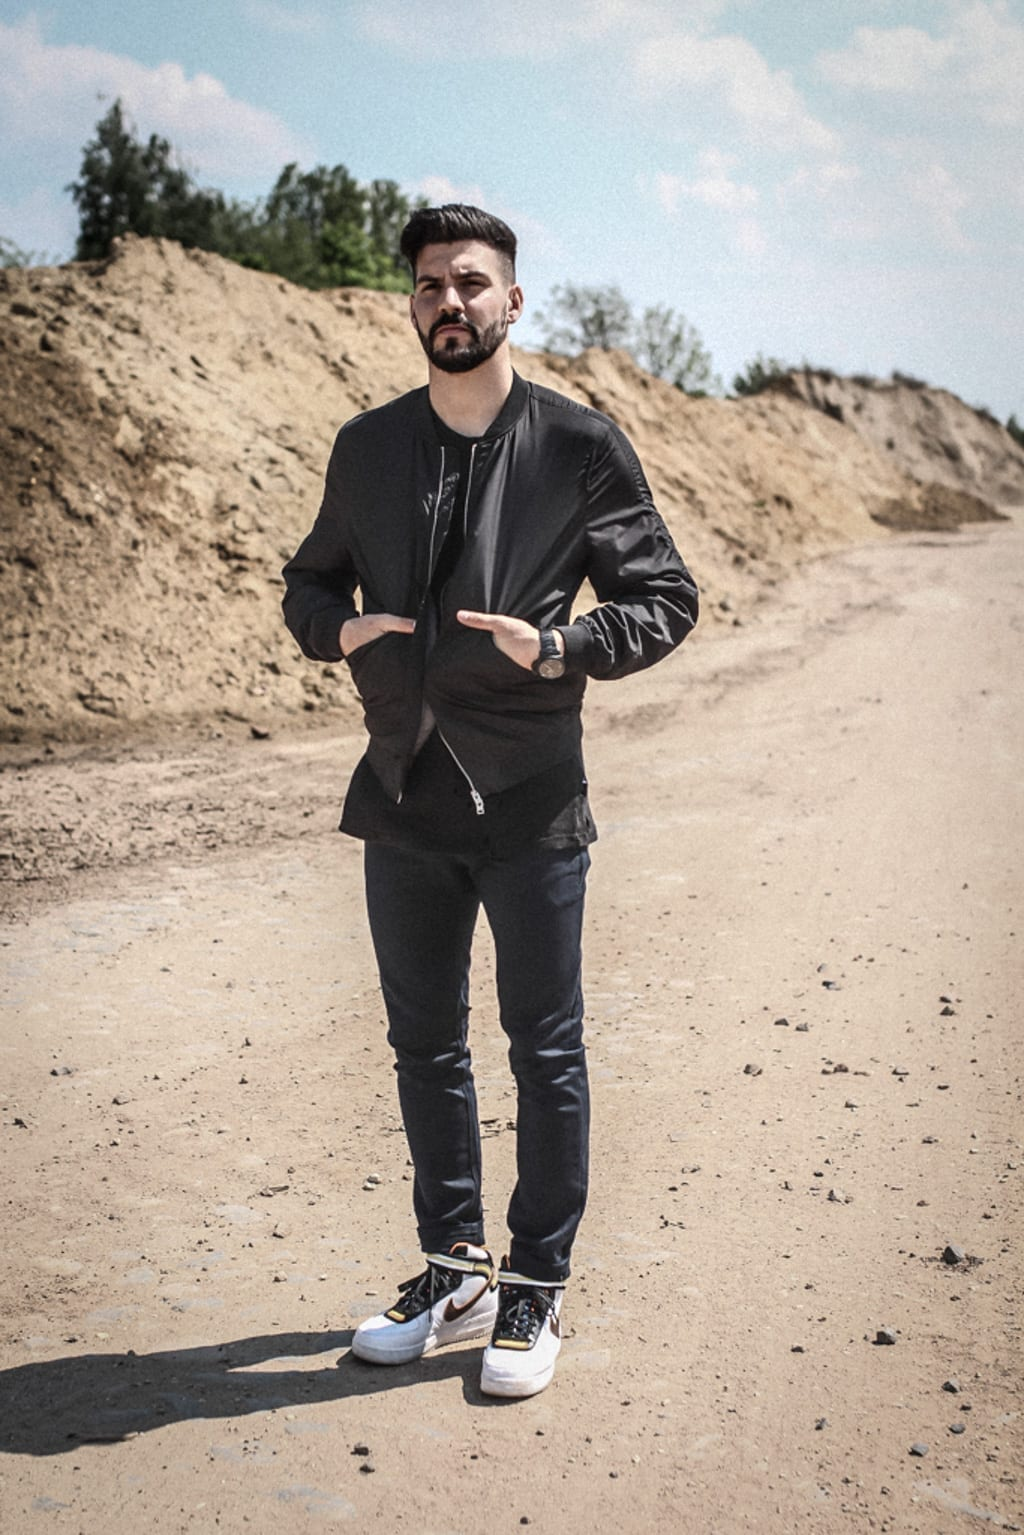 CK1603_Constantly-K-anthony-tony-jung-fußball-spieler-private-fashion-street-style-7262-2